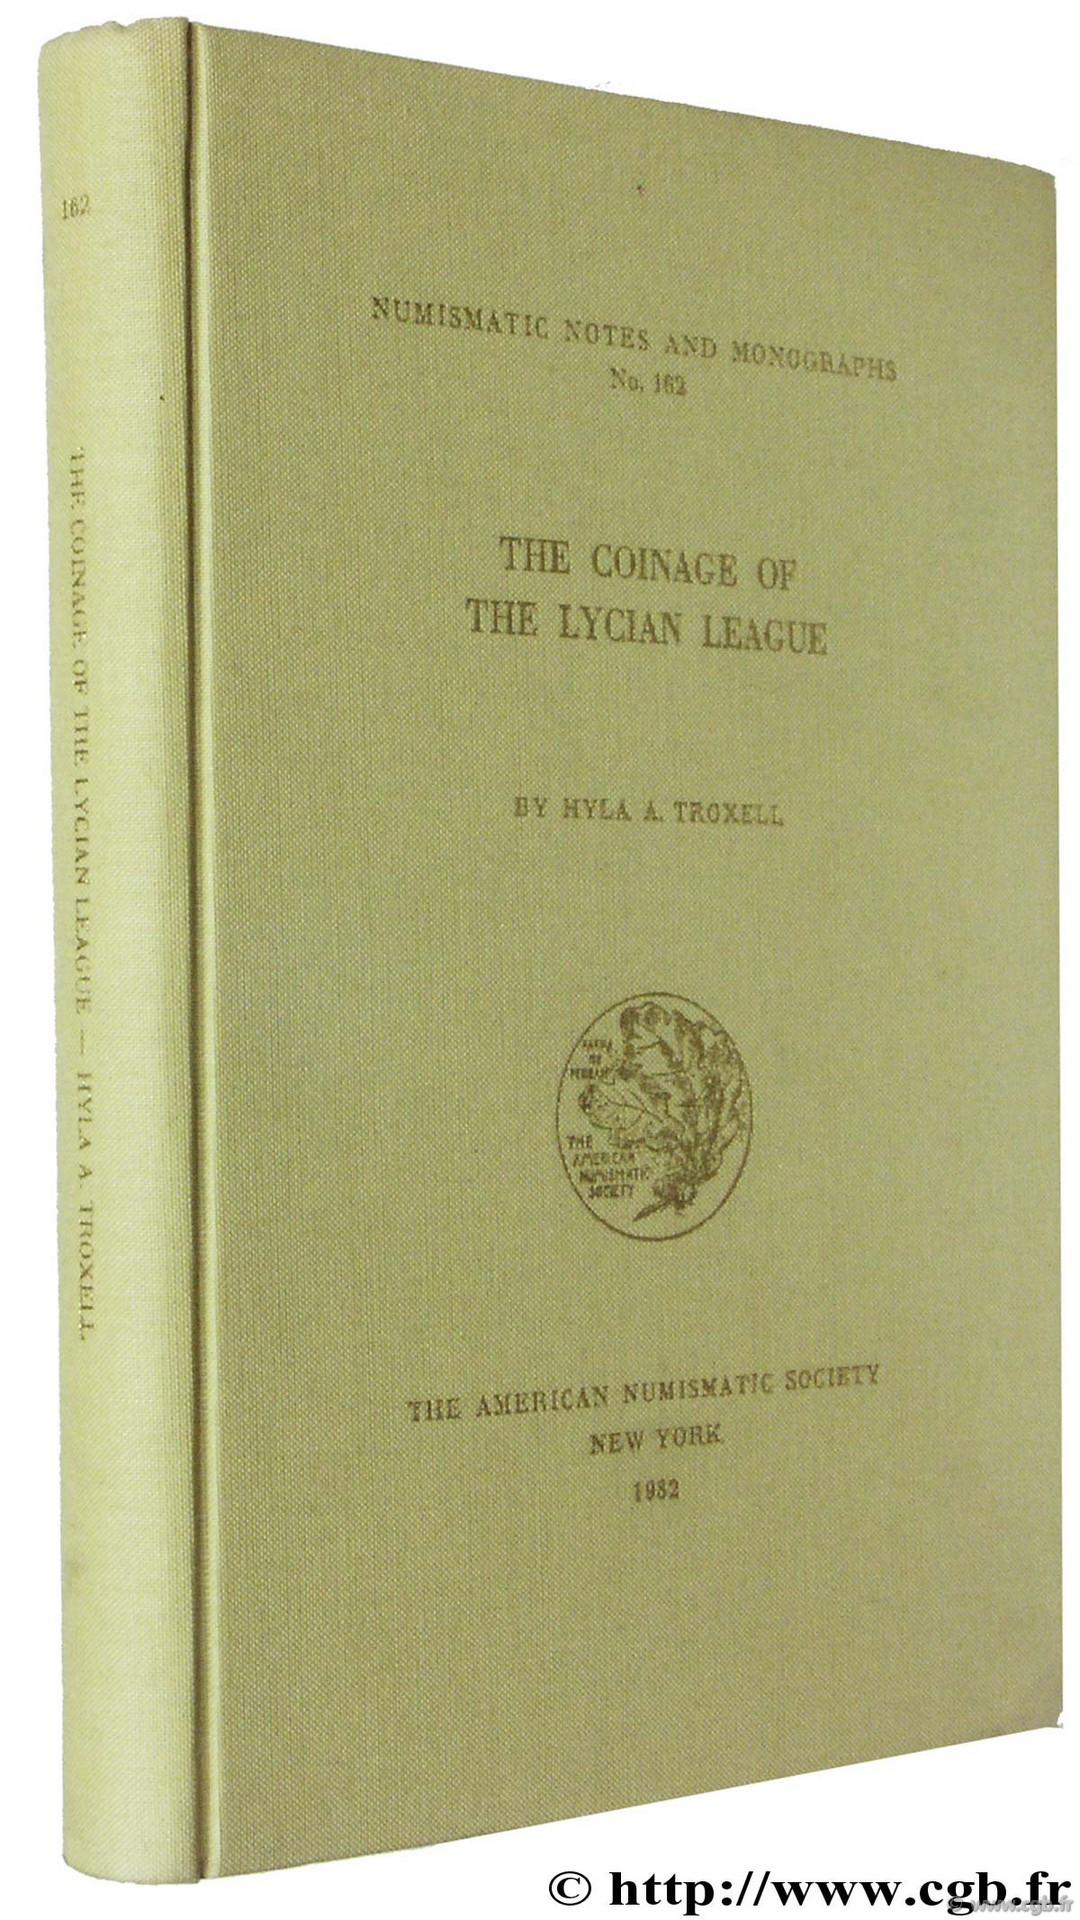 The Coinage of the Lycian League, NNM n° 162 TROXELL H.-A.